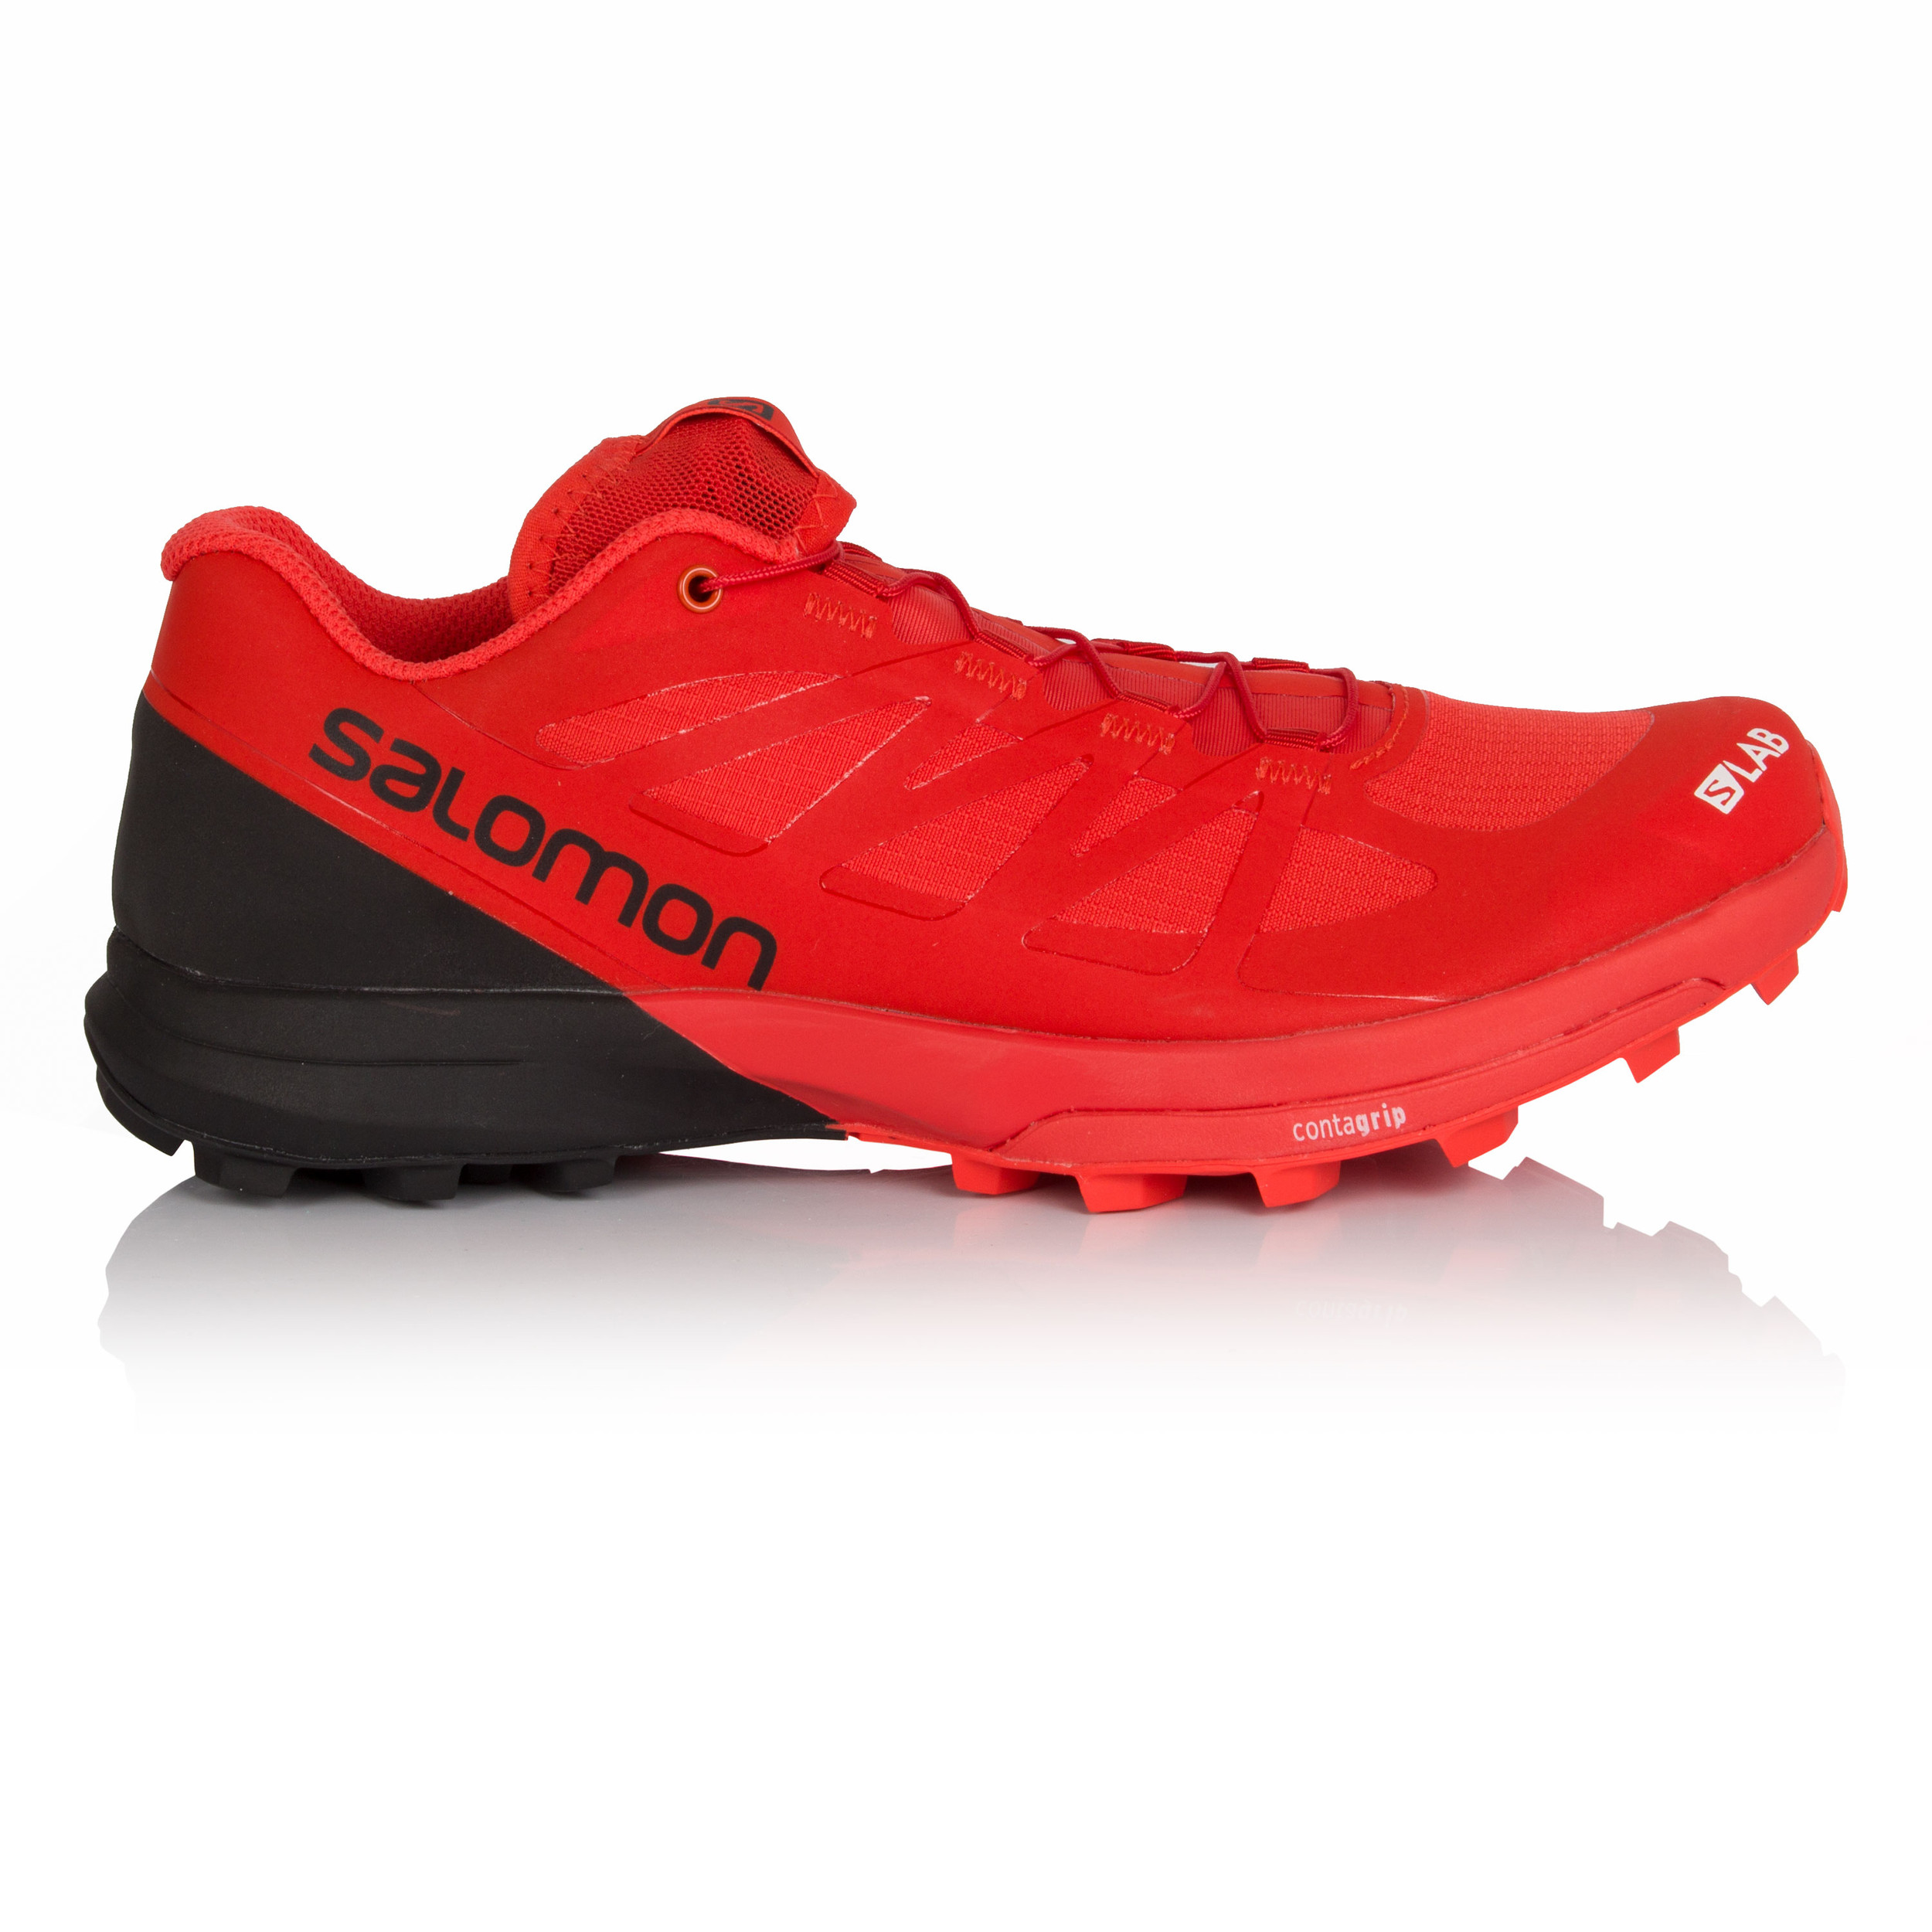 the best attitude 820a1 24682 Details about Salomon S-Lab Sense 6 SG Unisex Red Trail Running Training  Shoes Trainers